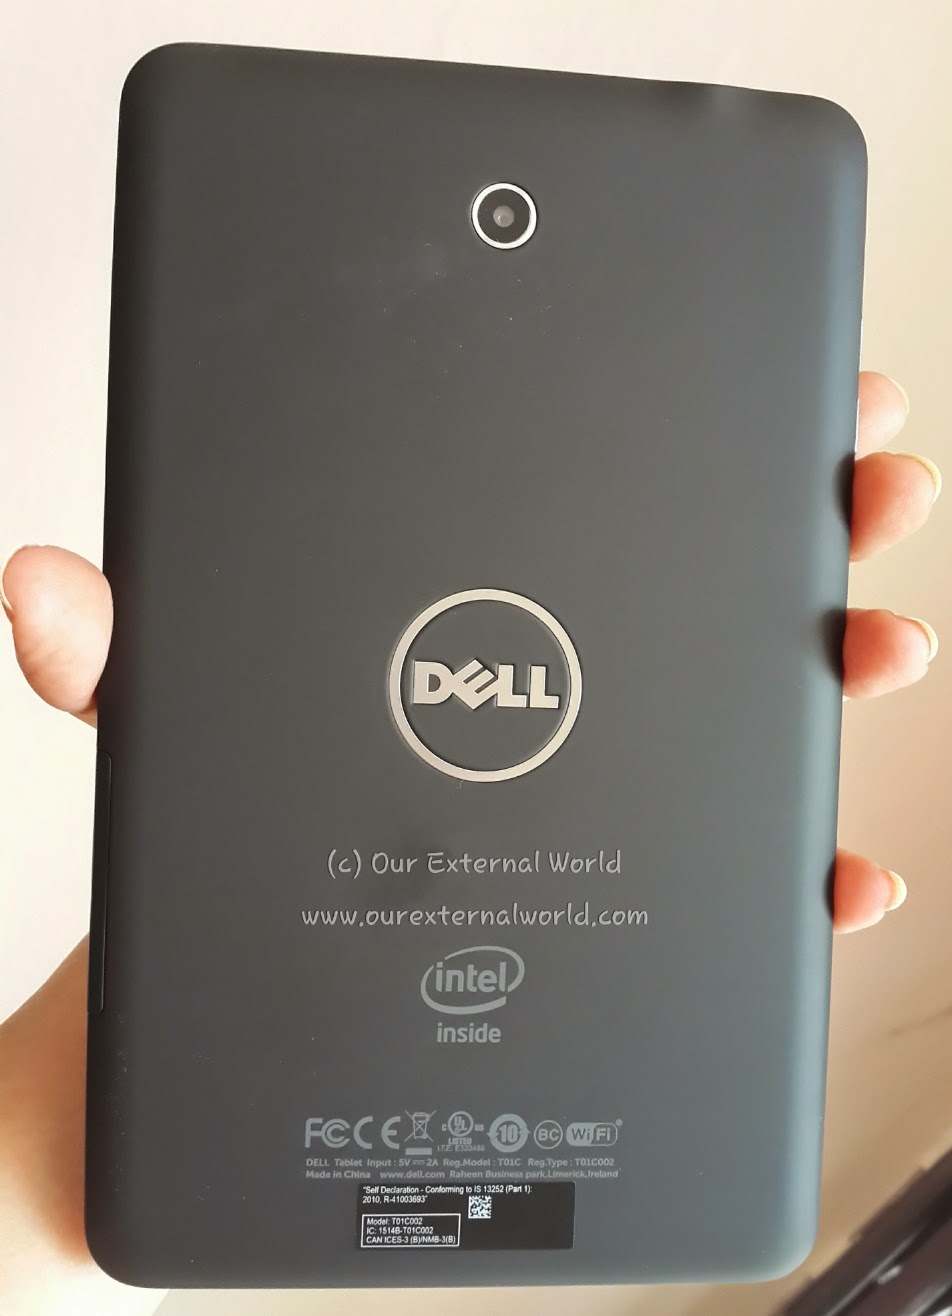 Dell Venue 7 For Blogging On The Go